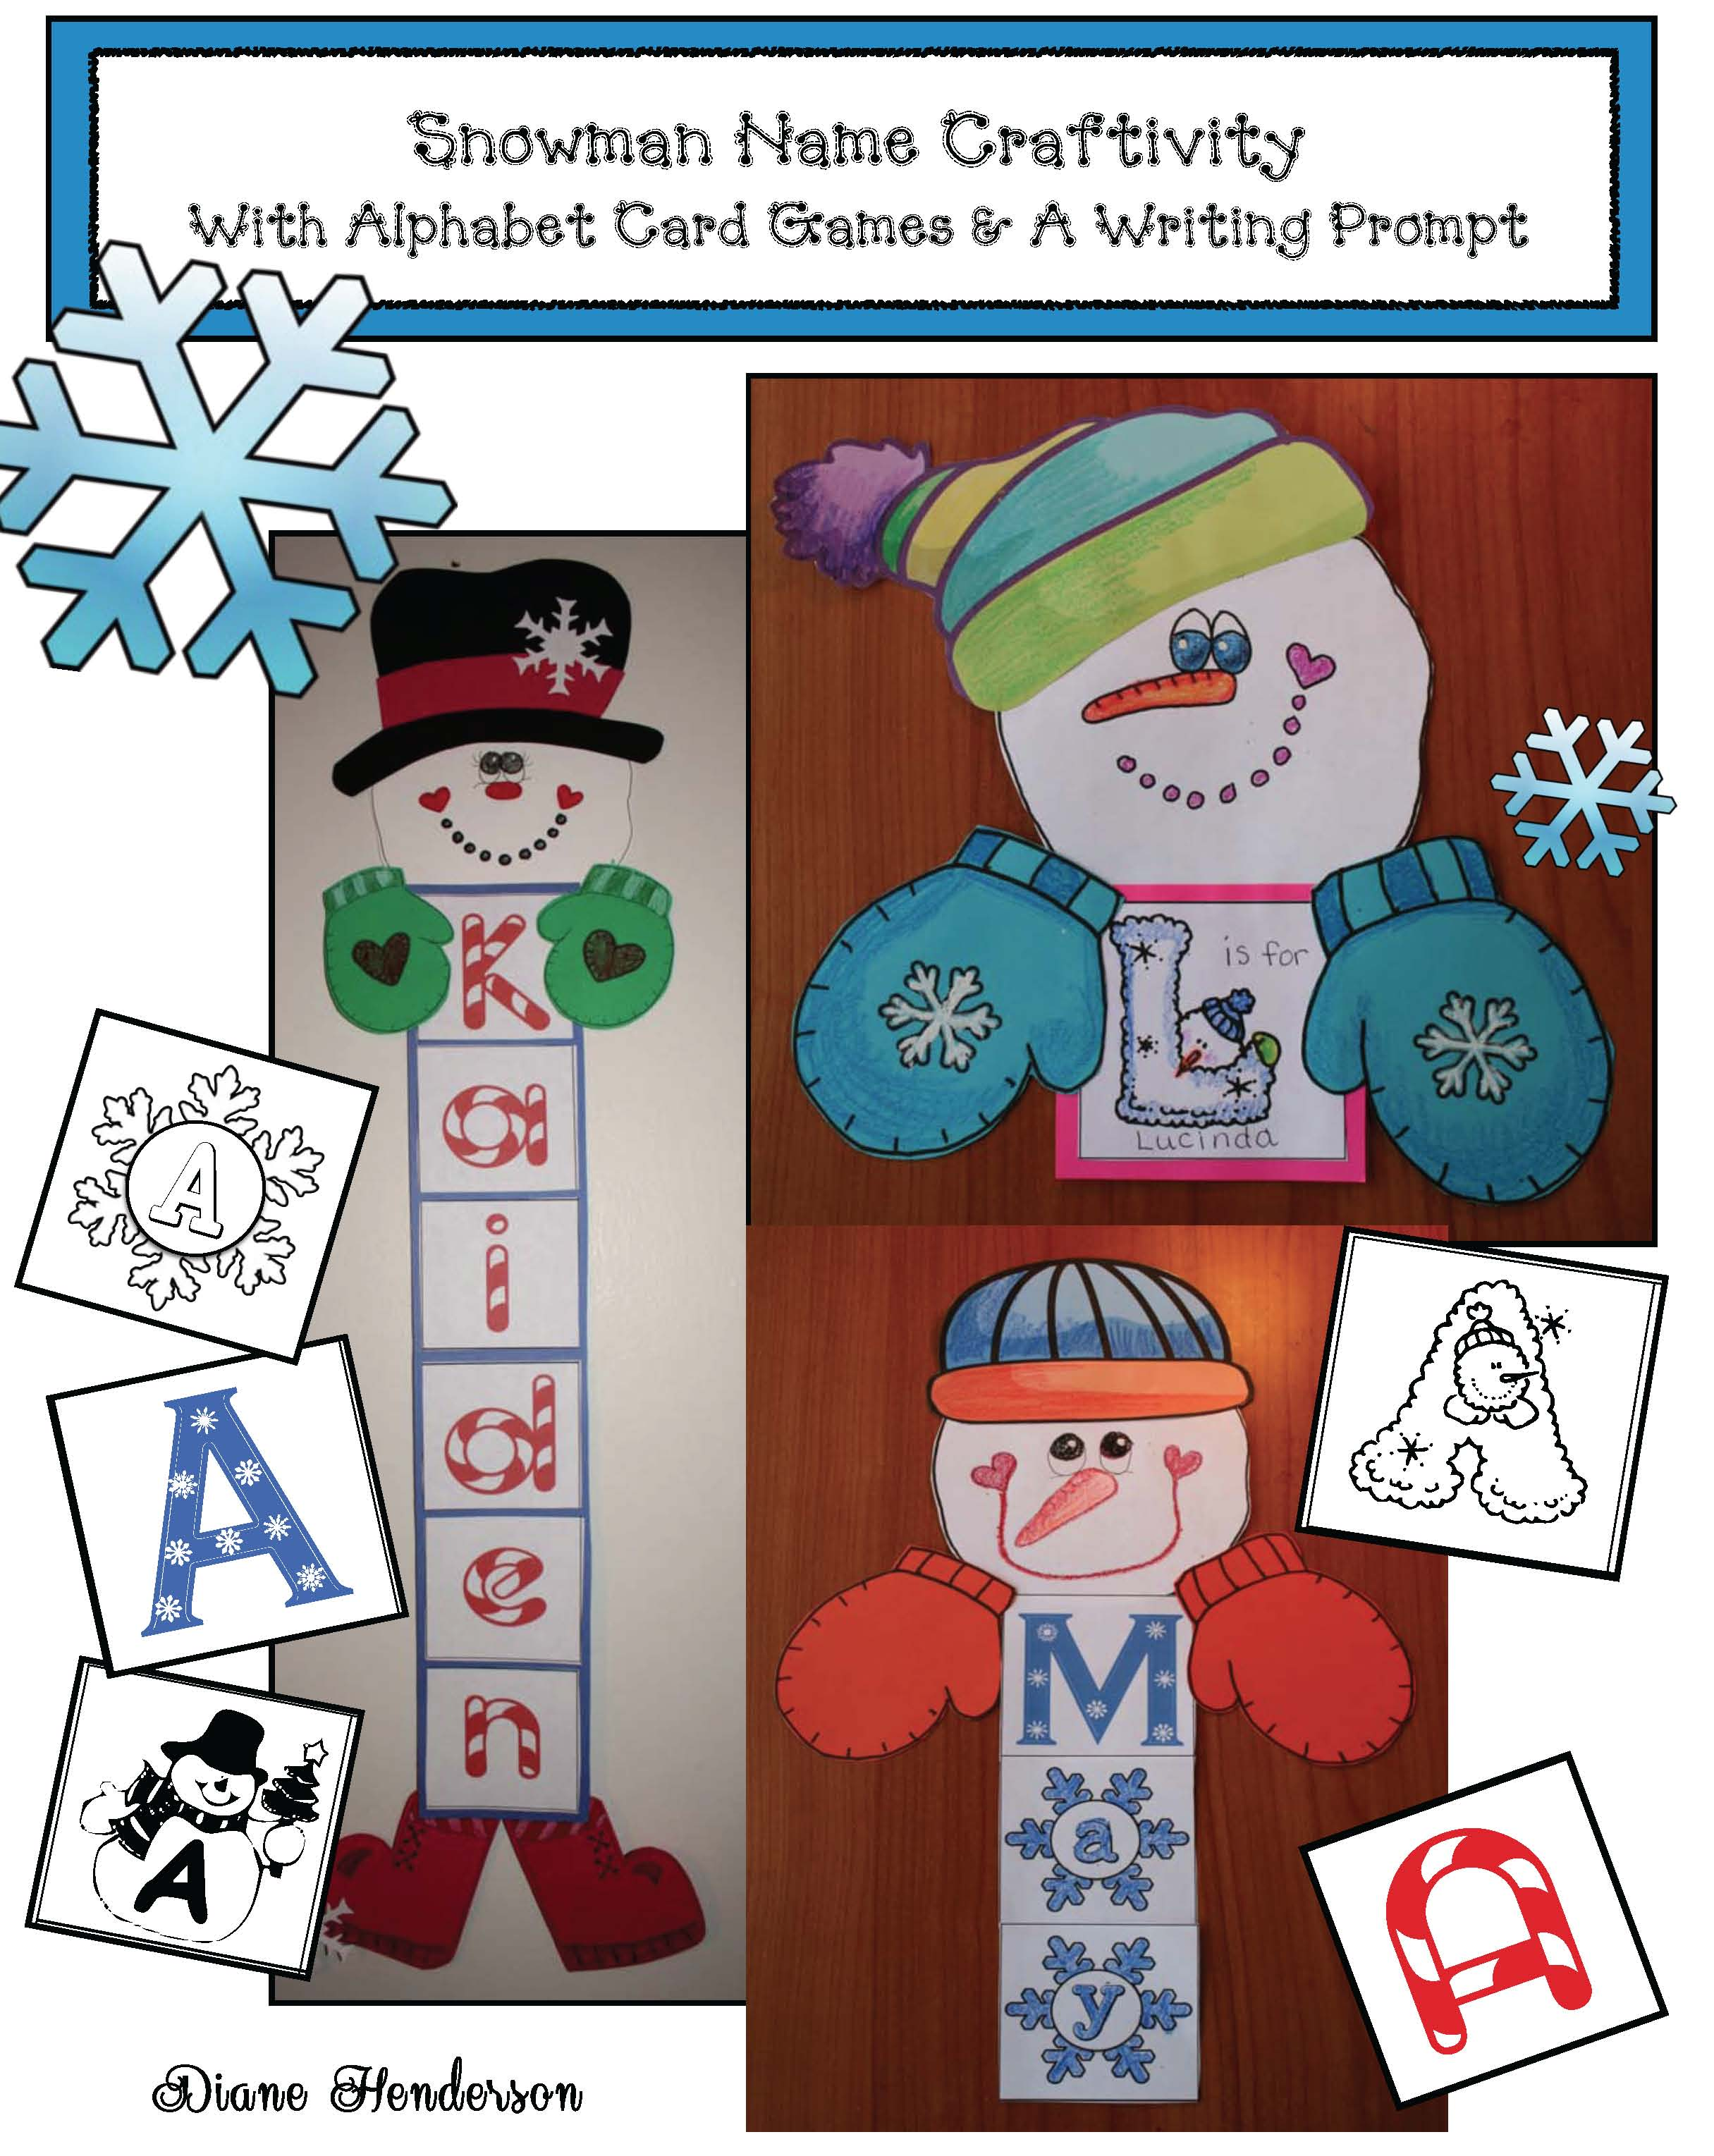 cover snowman name craftivity